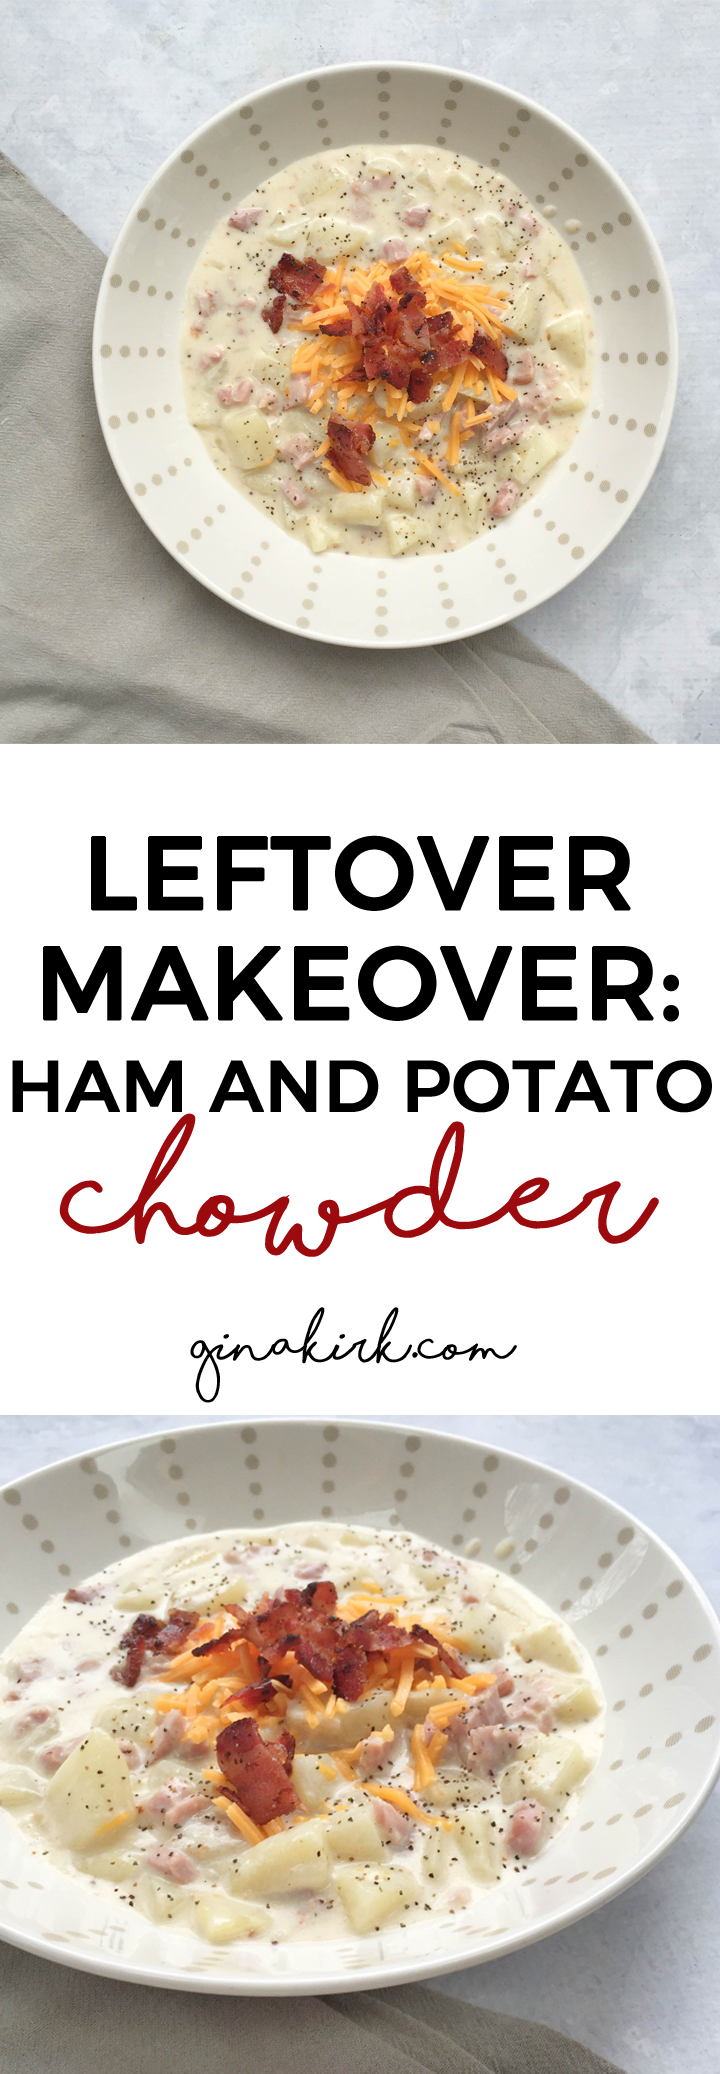 Leftover makeover: Ham and potato chowder | Leftover ham | Potato chowder | Easy dinner ideas | GinaKirk.com @ginaekirk